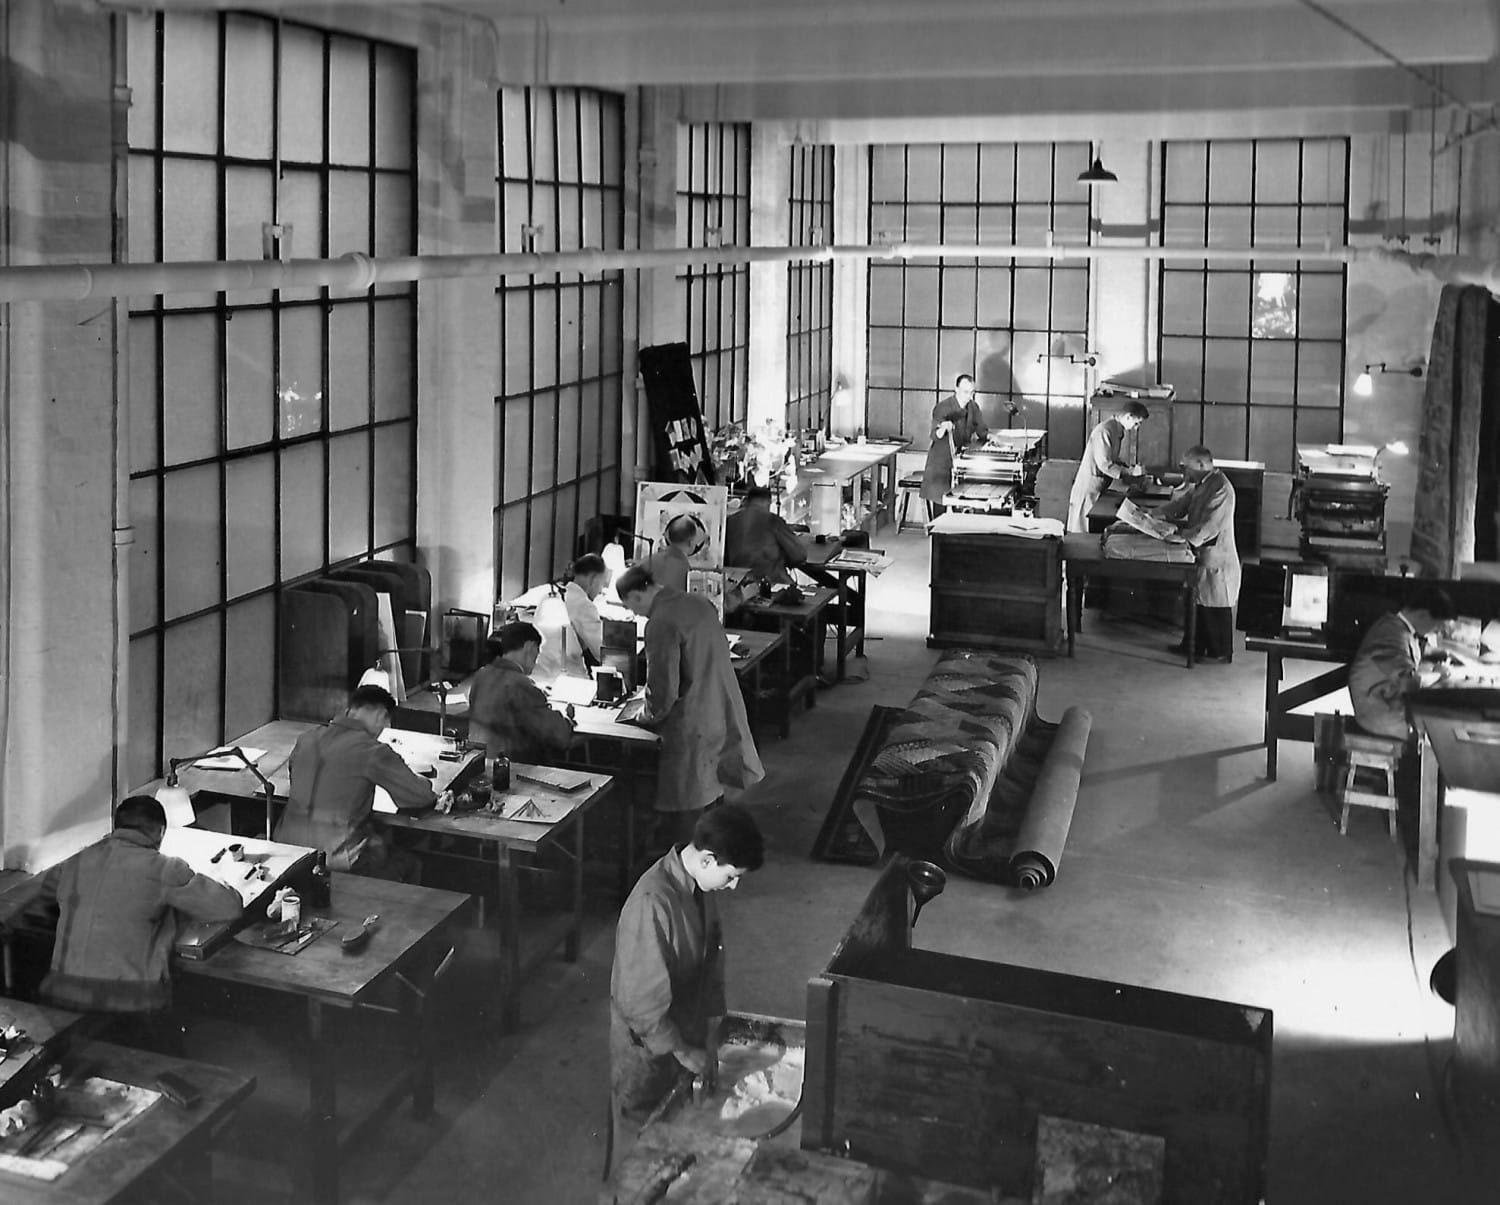 Think this might have been what passed for colour planning/assembly back in the day. The windows are masked out to stop daylight affecting things. Looks like a carpet displayed in the middle so it could just be another artwork department (?)